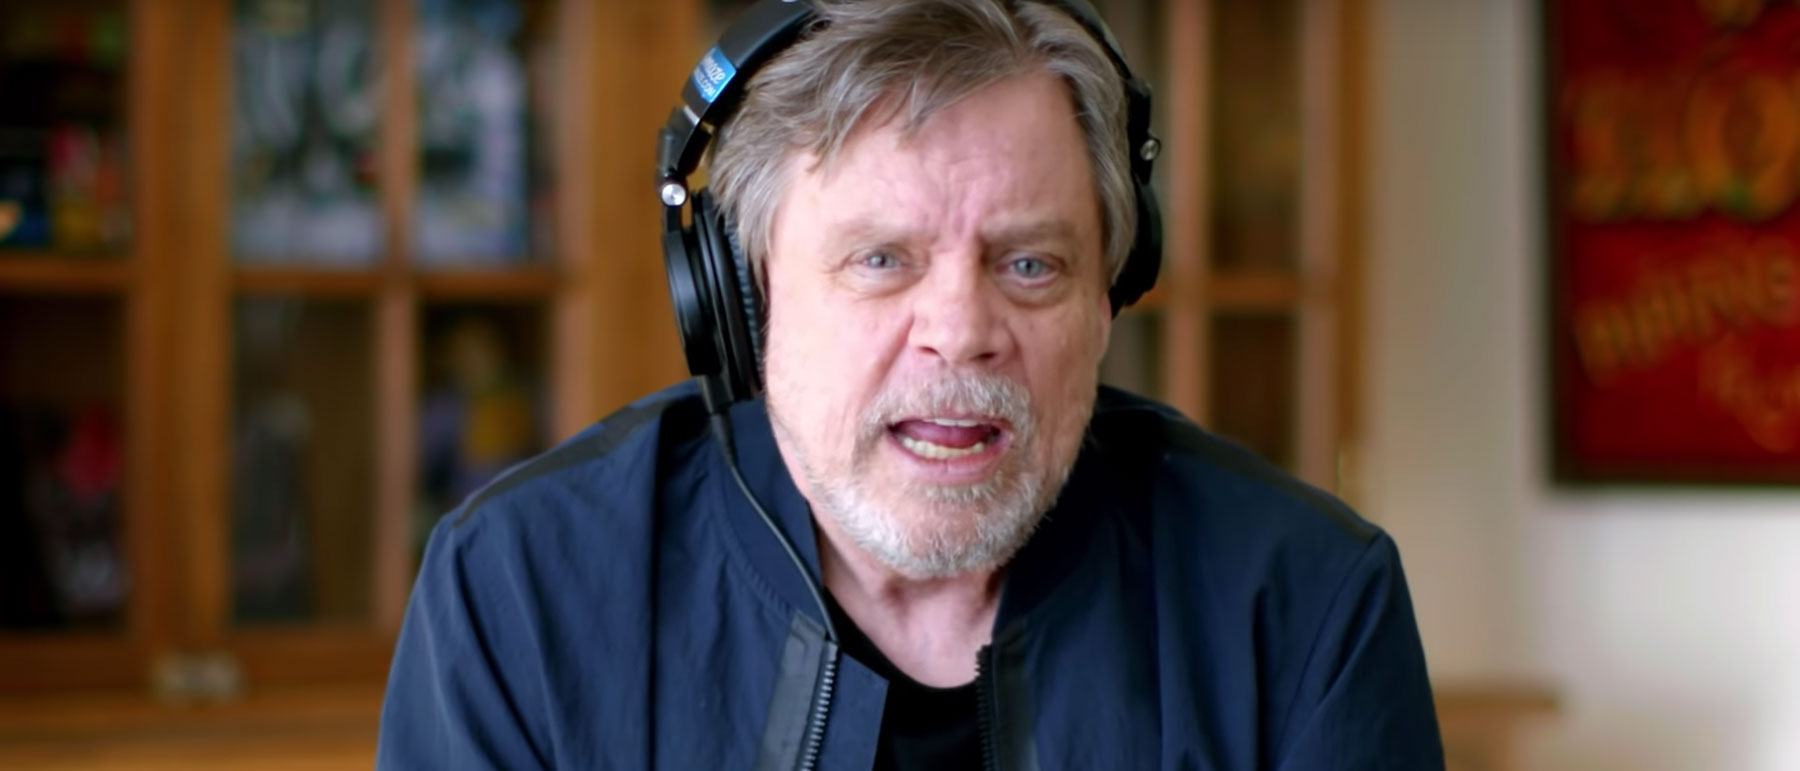 Mark Hamill reacts to his Star Wars audition in Omaze video